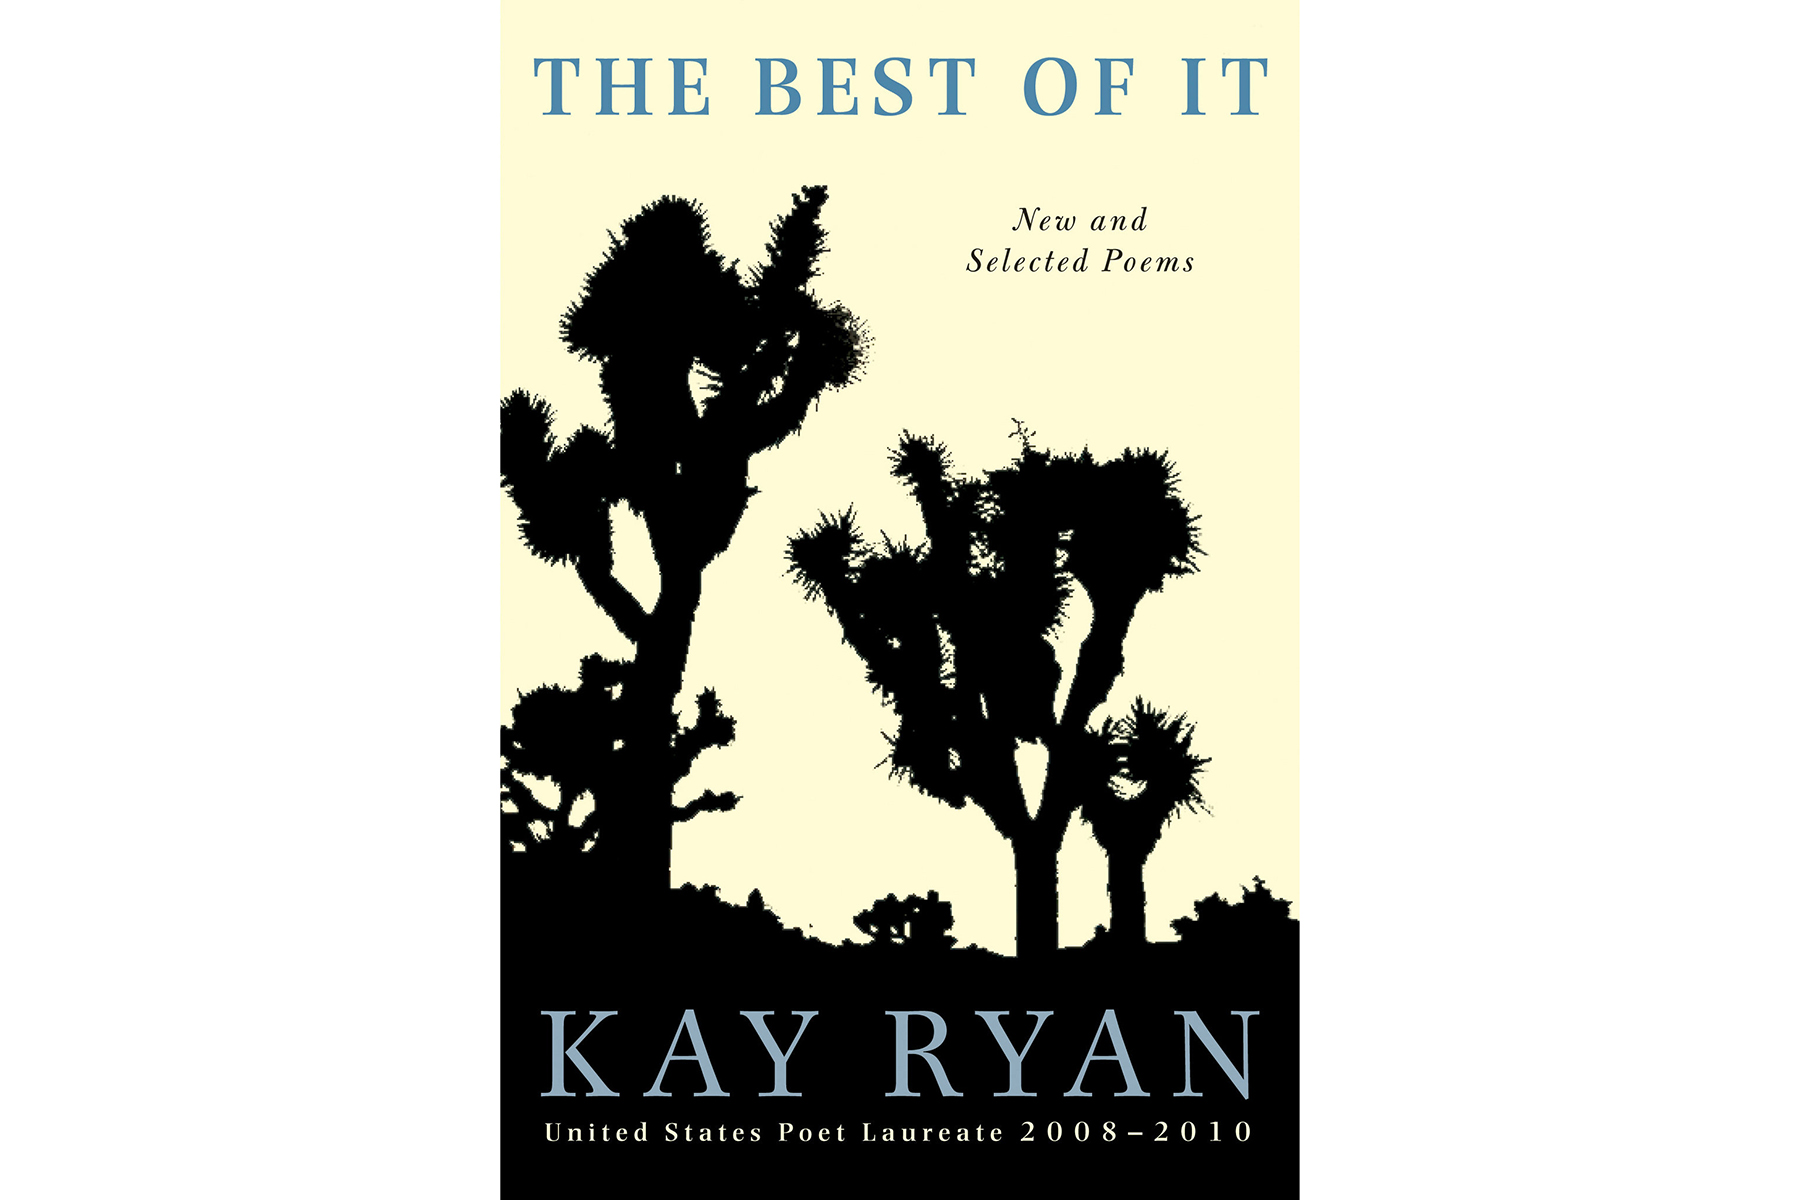 The Best of It, by Kay Ryan